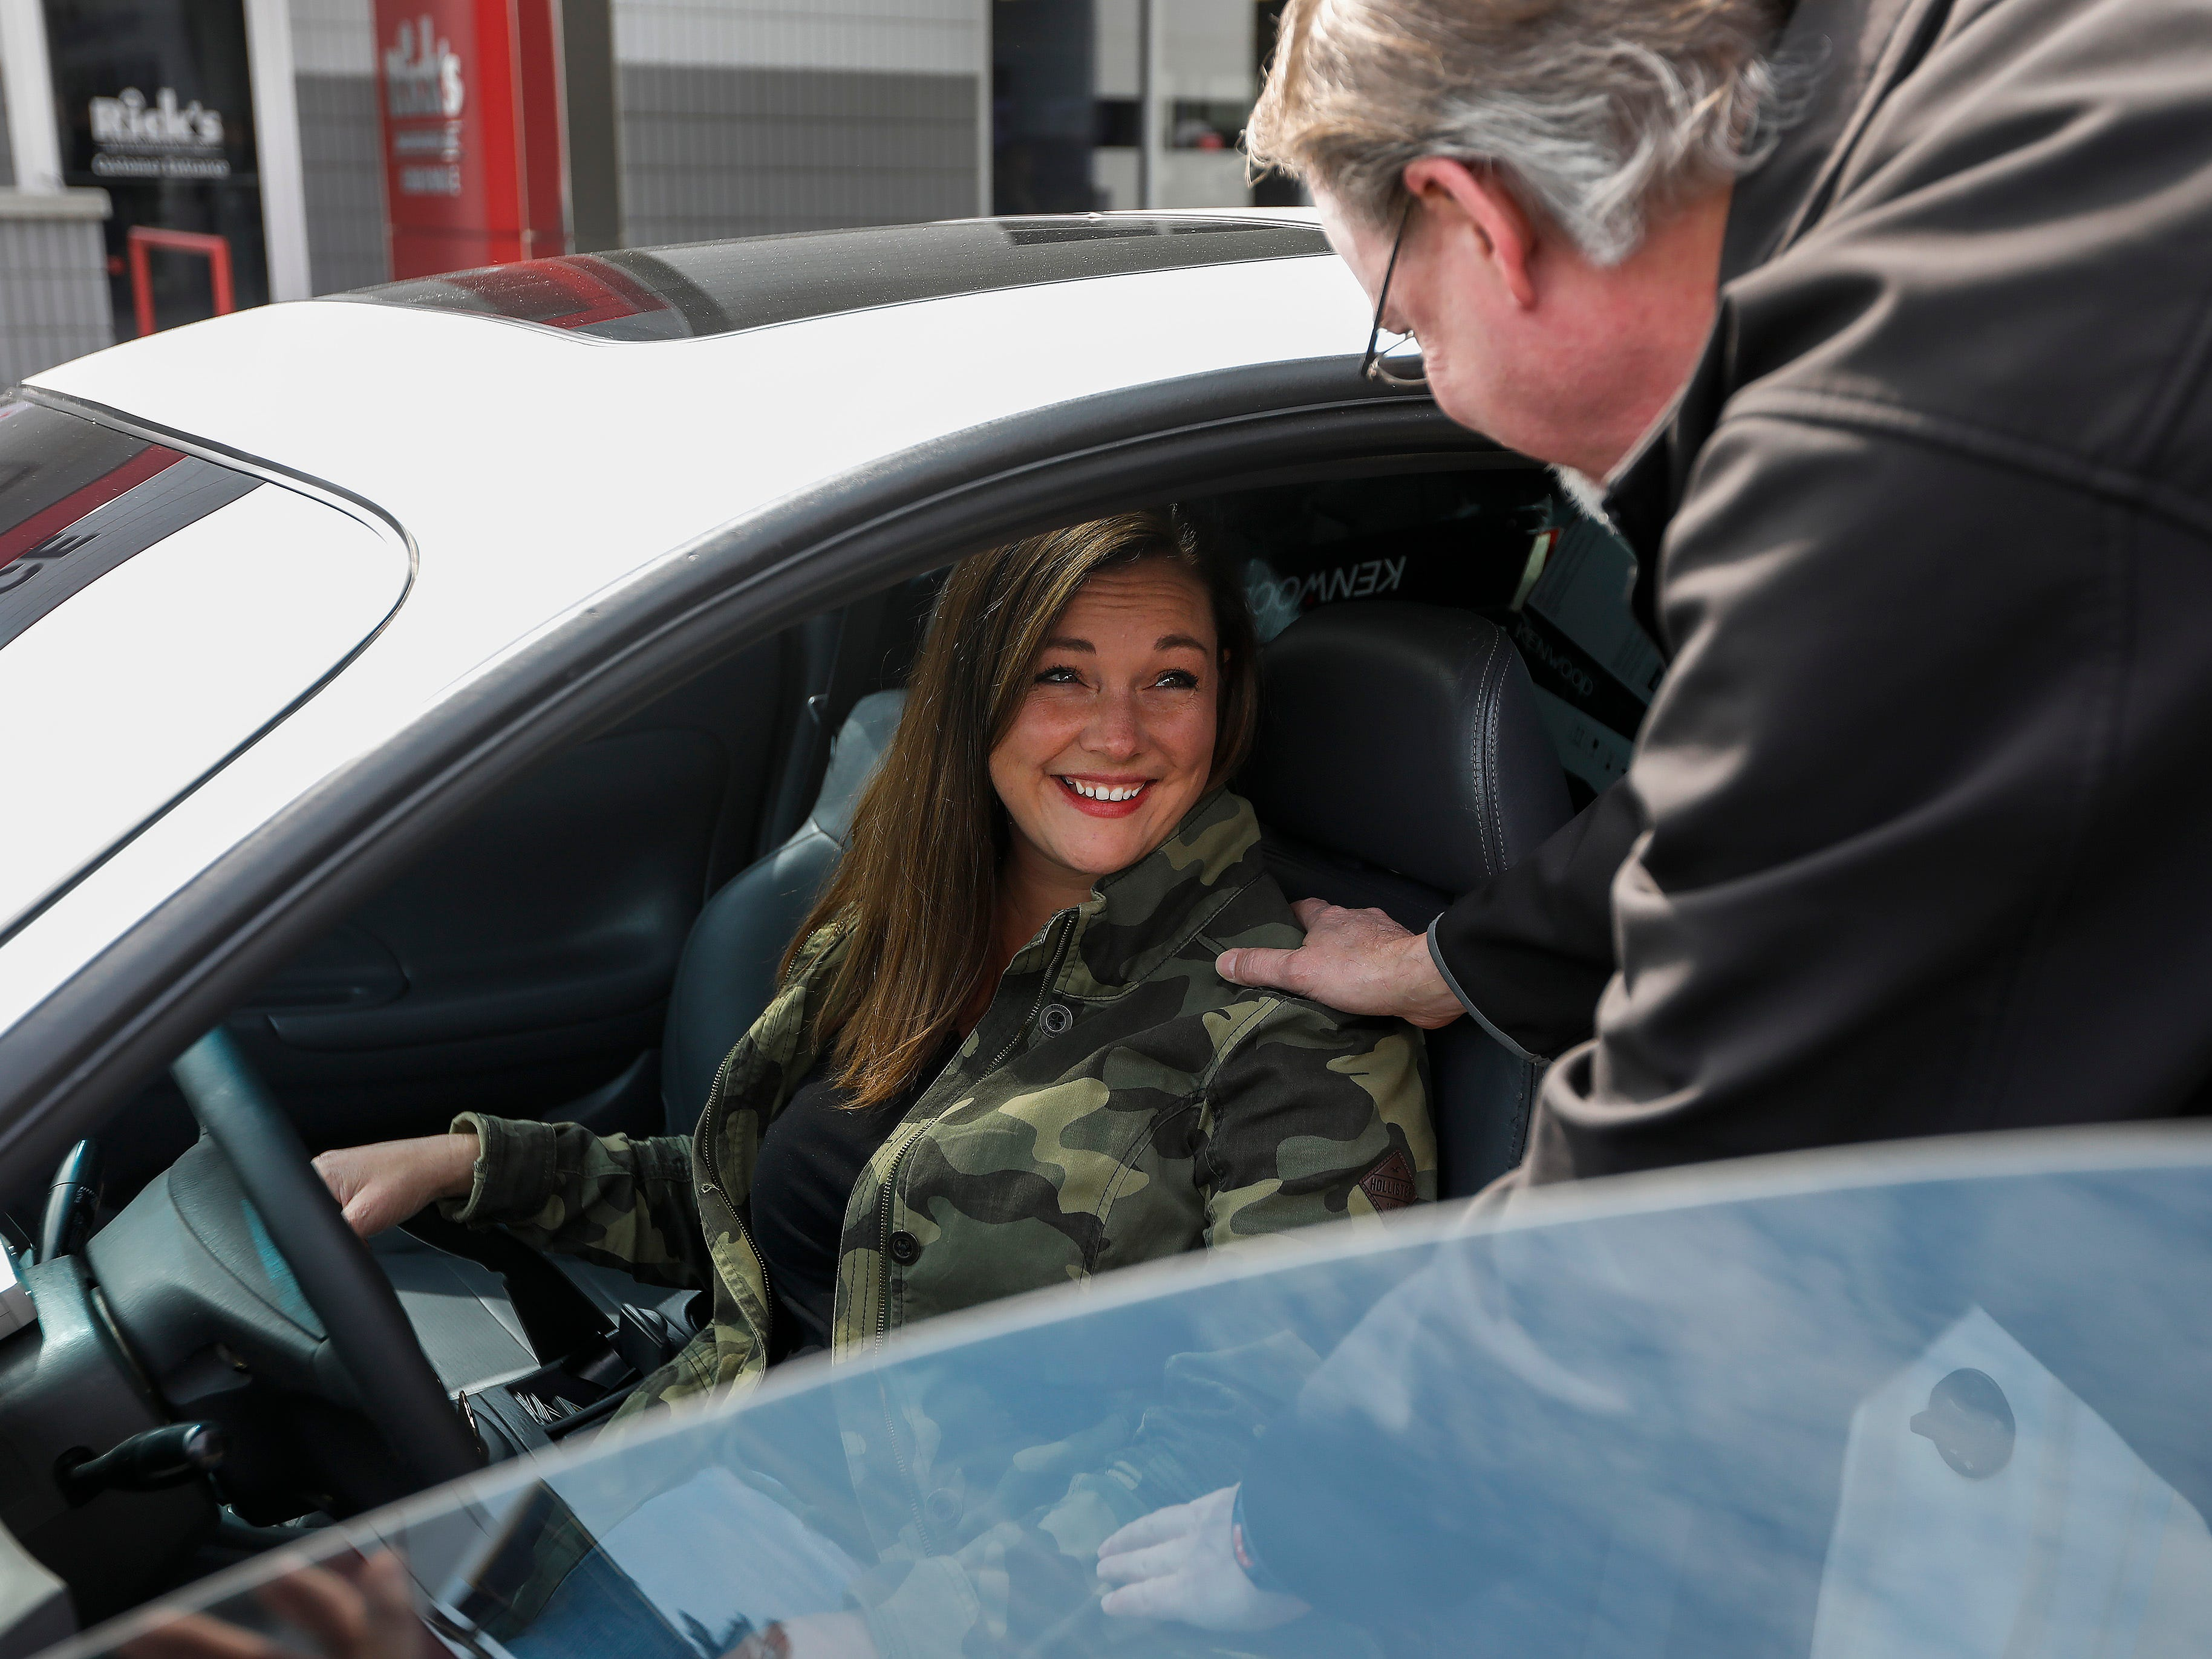 Kim Roberts, widow of Greene County Deputy Aaron Roberts, smiles as Andre Brunnert, manager at Car-fi, goes over the sound system that was installed in the 1995 Mitsubishi Eclipse that her husband was restoring before he died.